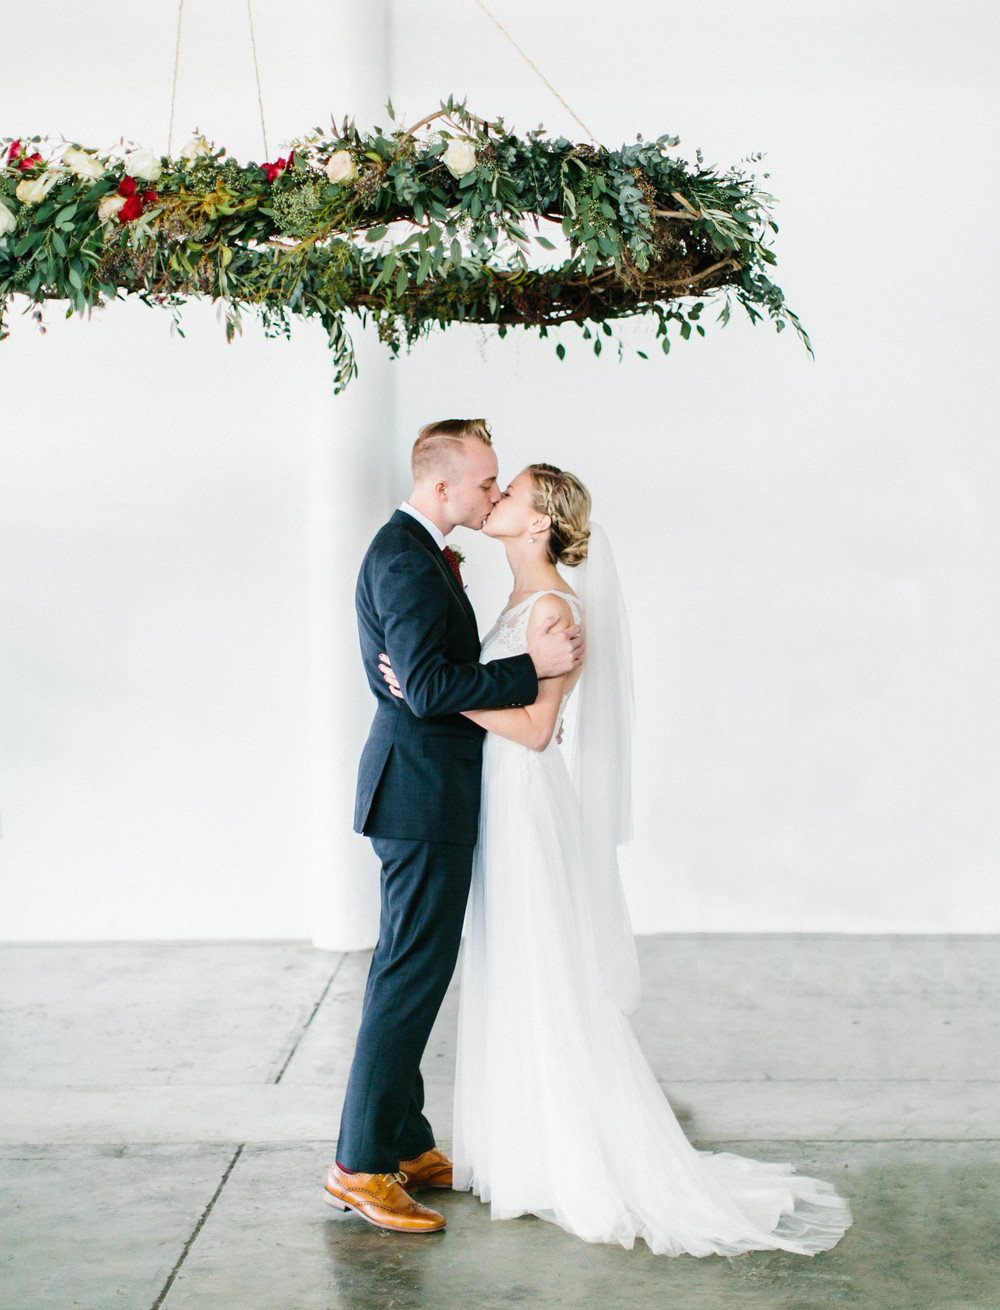 First Kiss under suspended floral wreath // Destination Wedding Florals